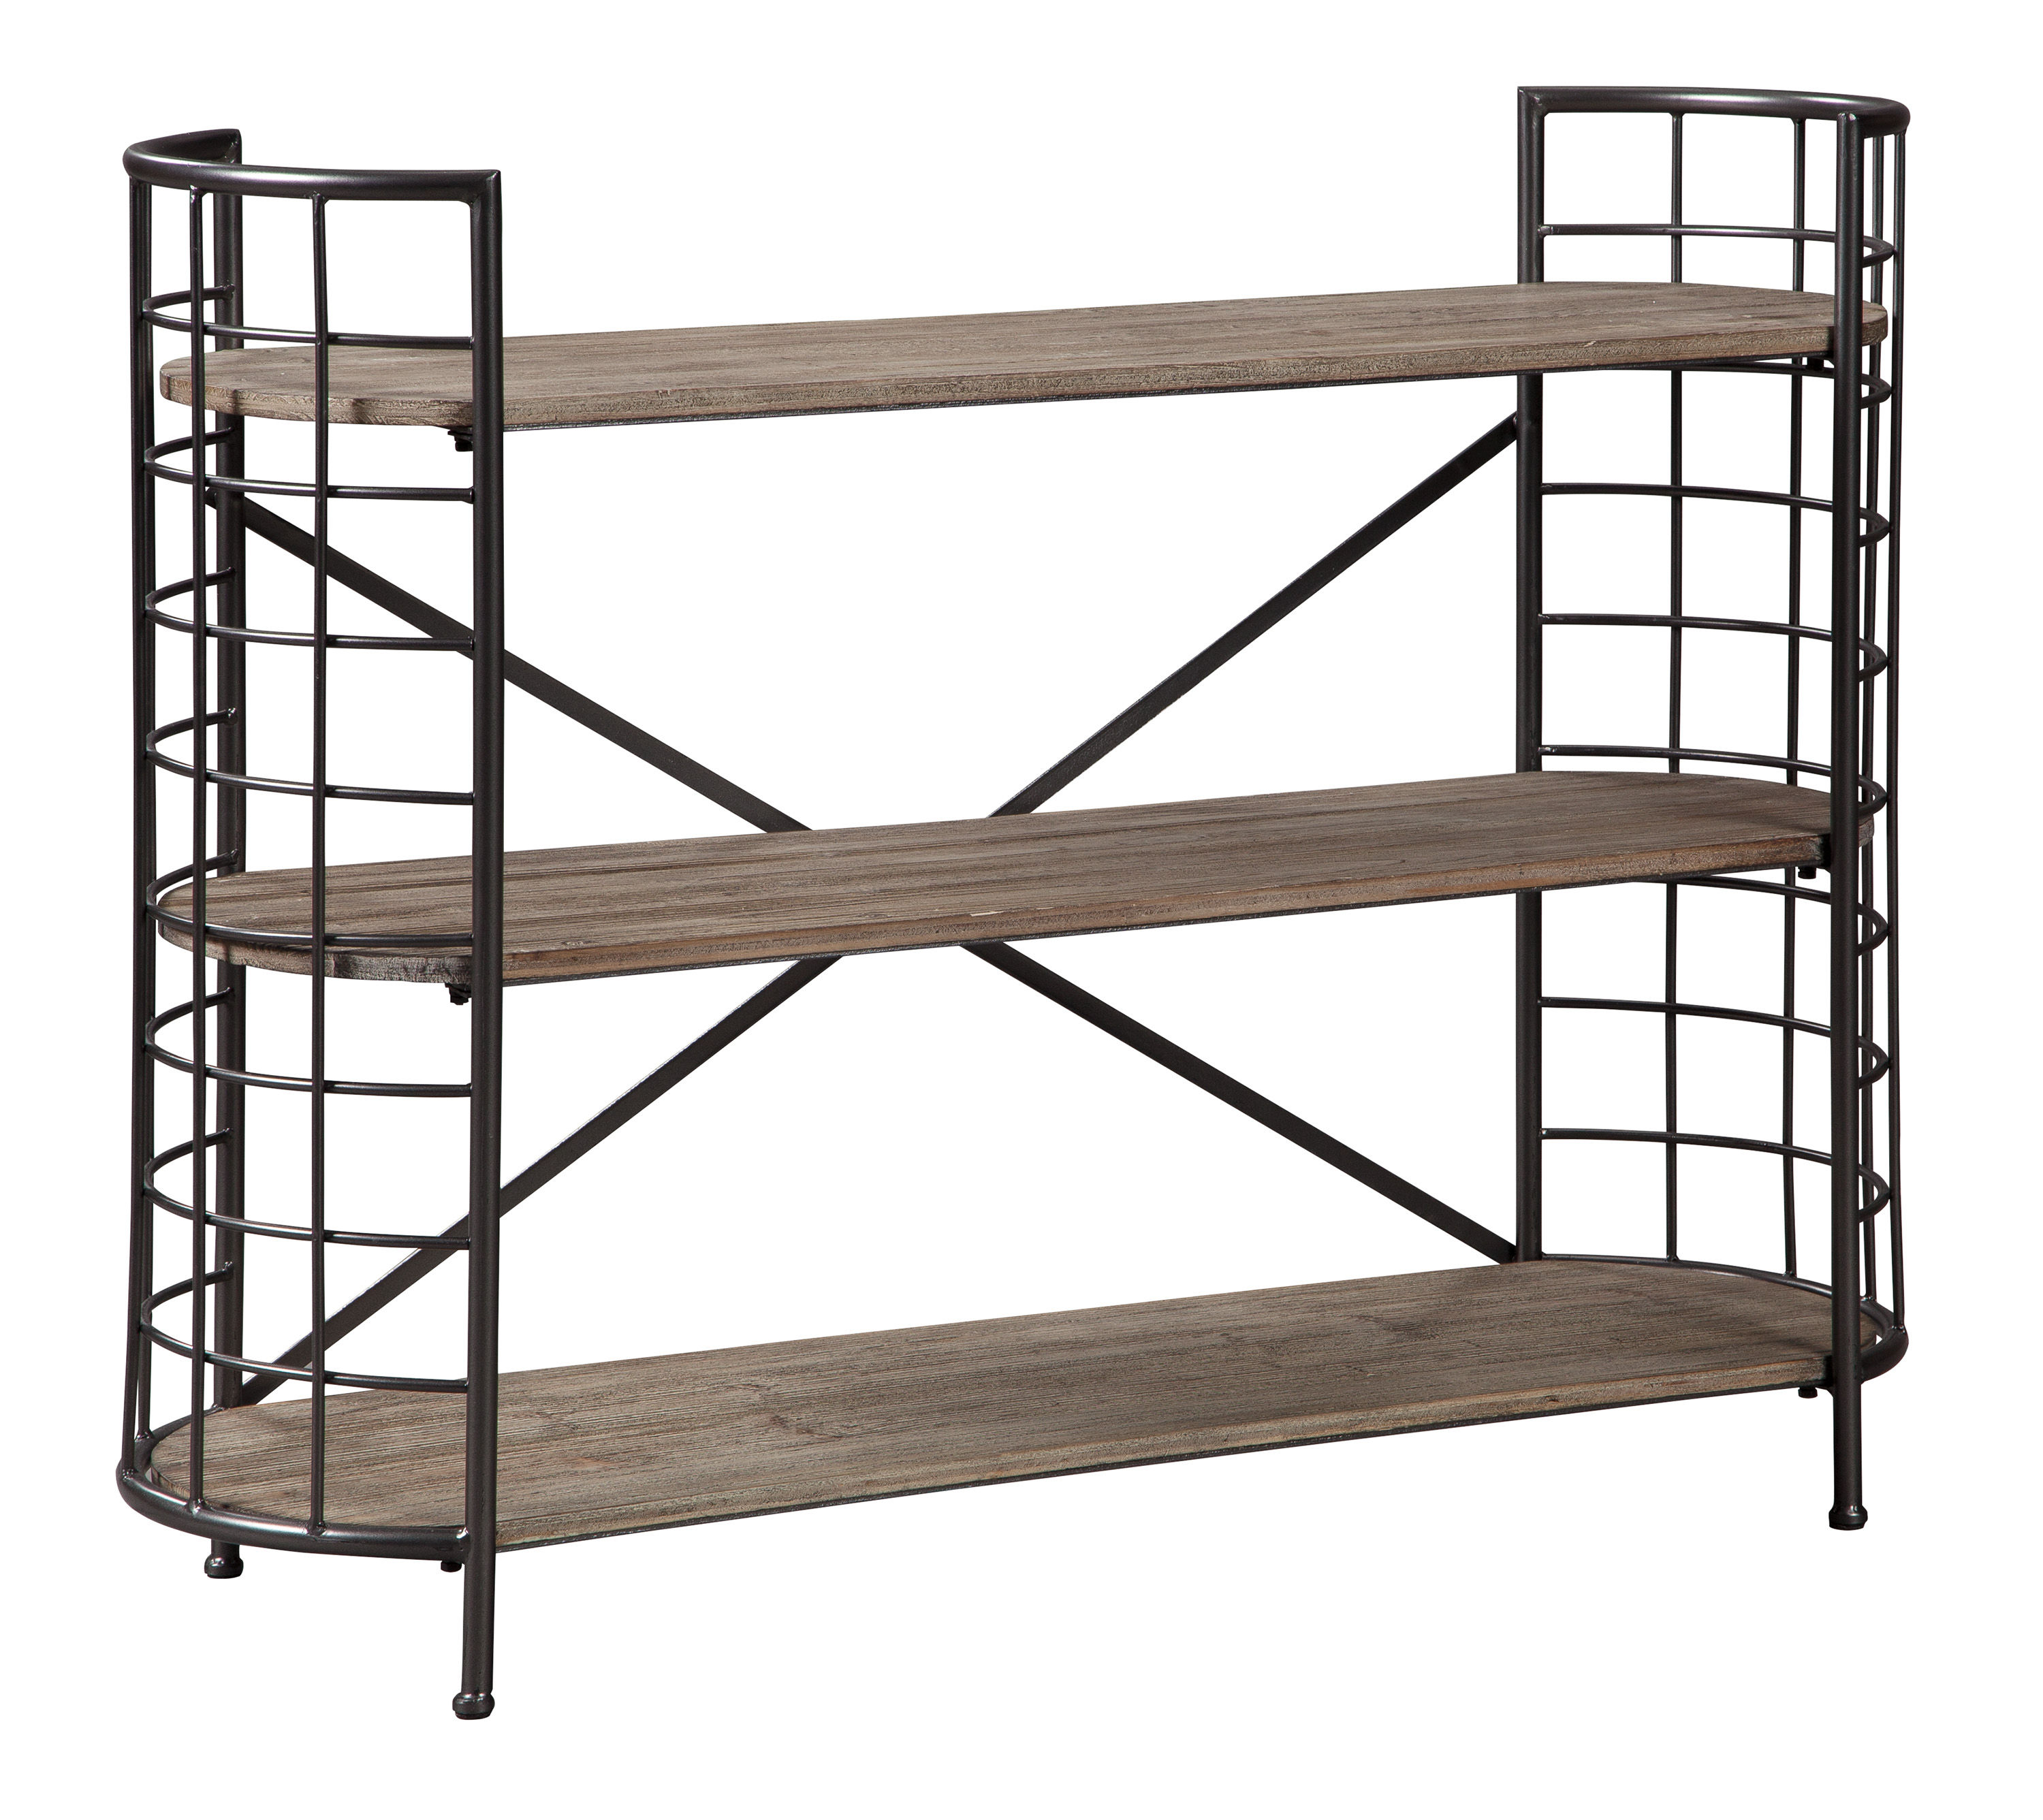 Ashley Furniture Flintley Brown Gunmetal Bookcase The Classy Home